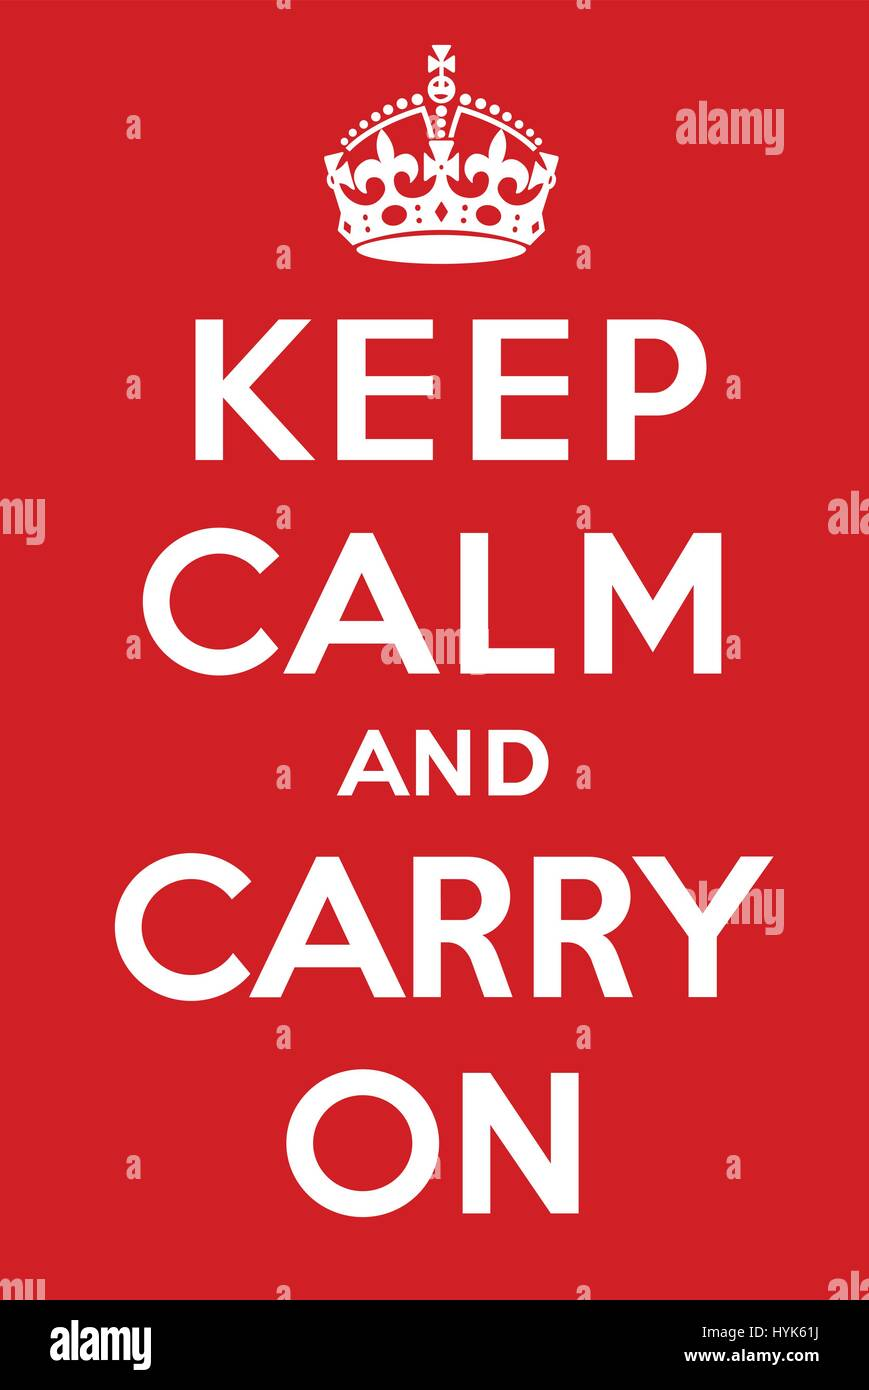 Keep calm and carry on poster - Stock Image